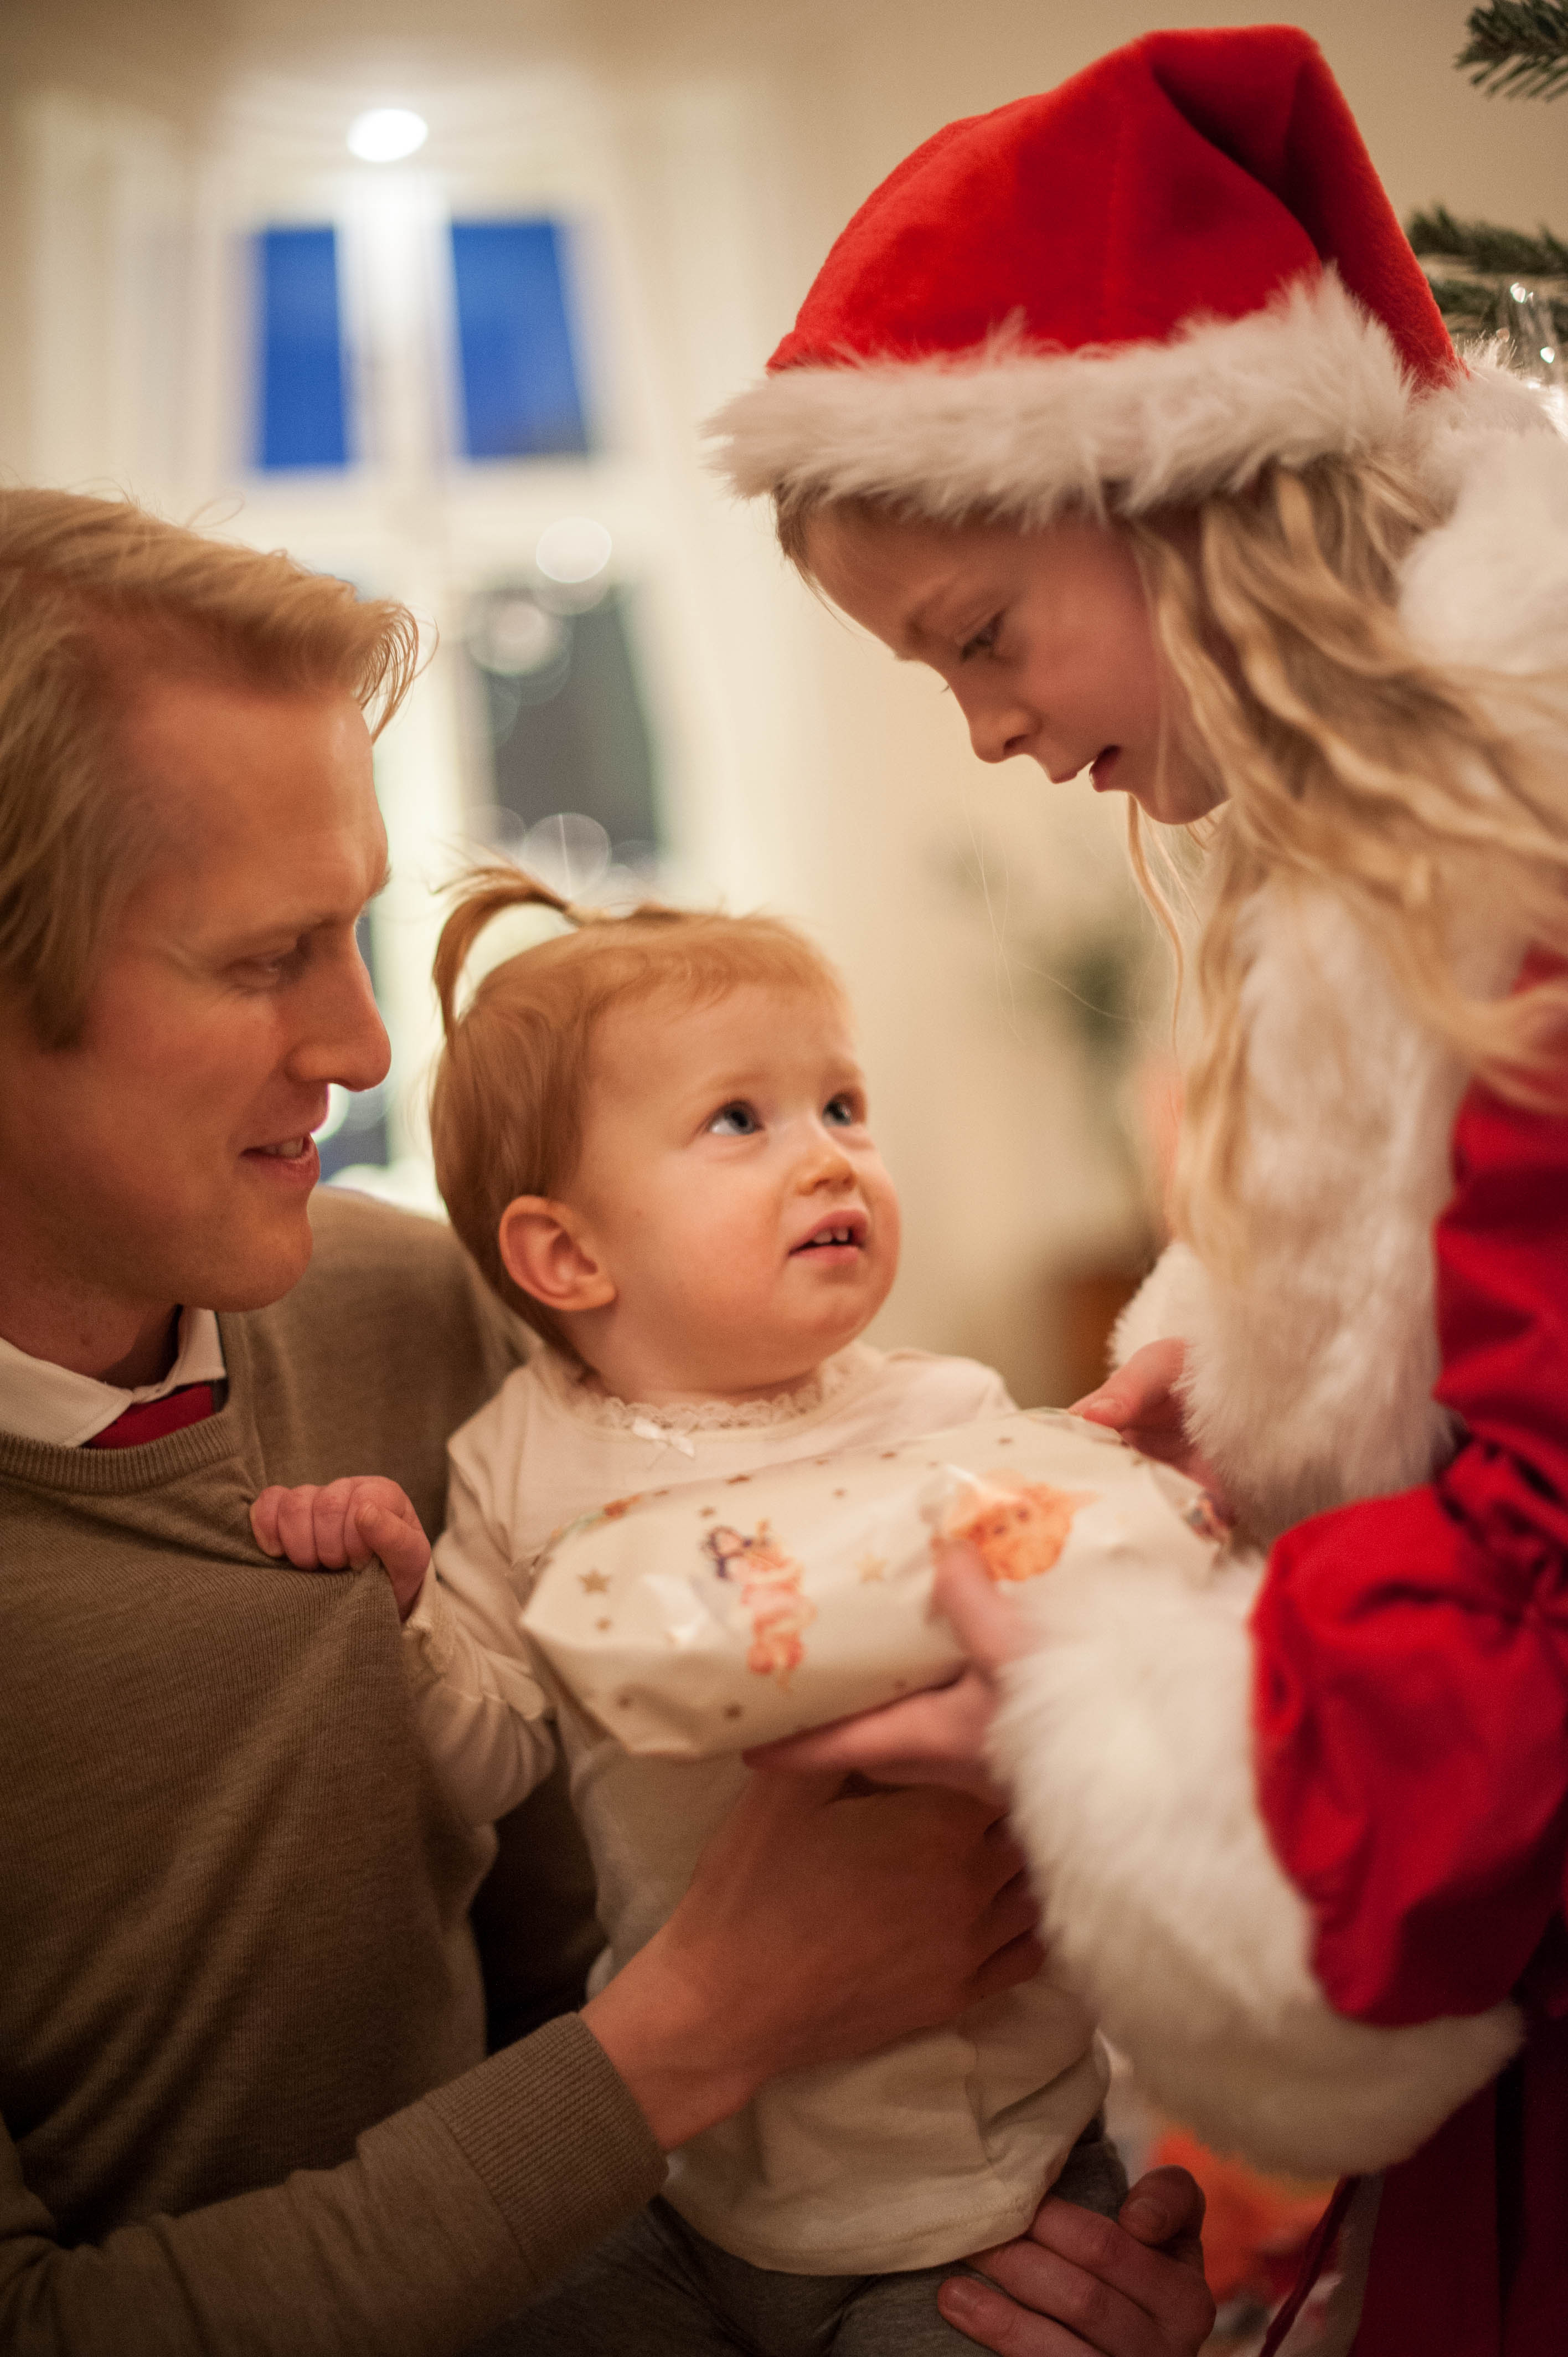 My niece met Santa for the first time. A year ago this photo would not have made the cut since she looks more worried than happy. I now think it captures the moment, the little hand holding her father's sweater, and the other's heads framing her beautifully.